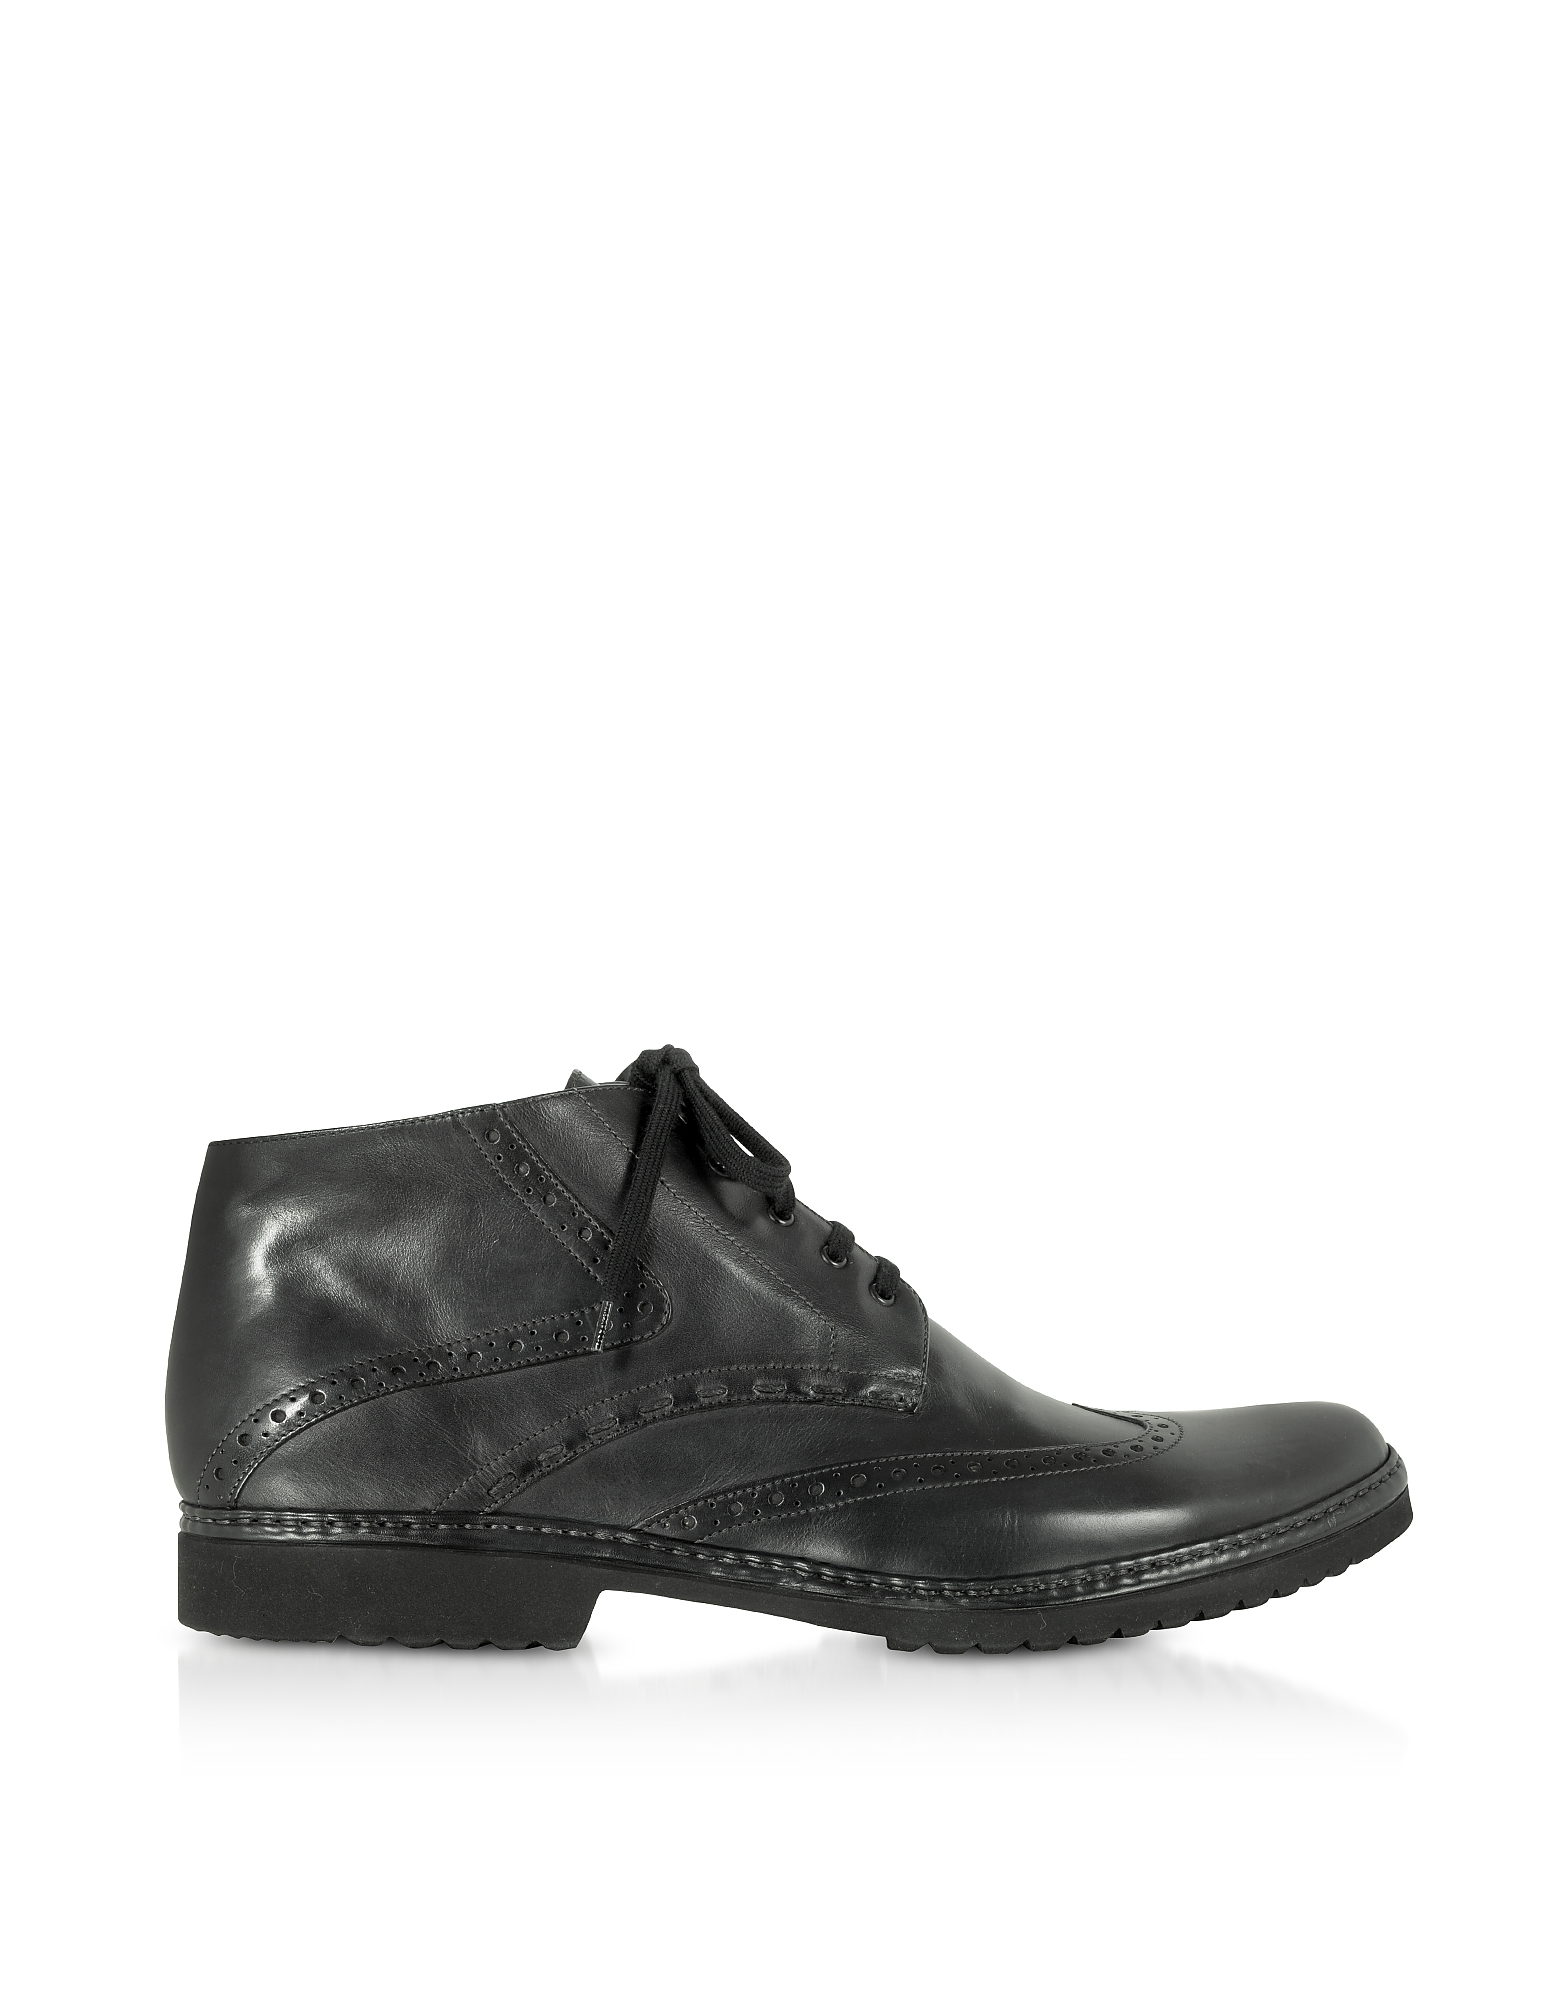 Pakerson Black Handmade Italian Leather Wingtip Ankle Boots